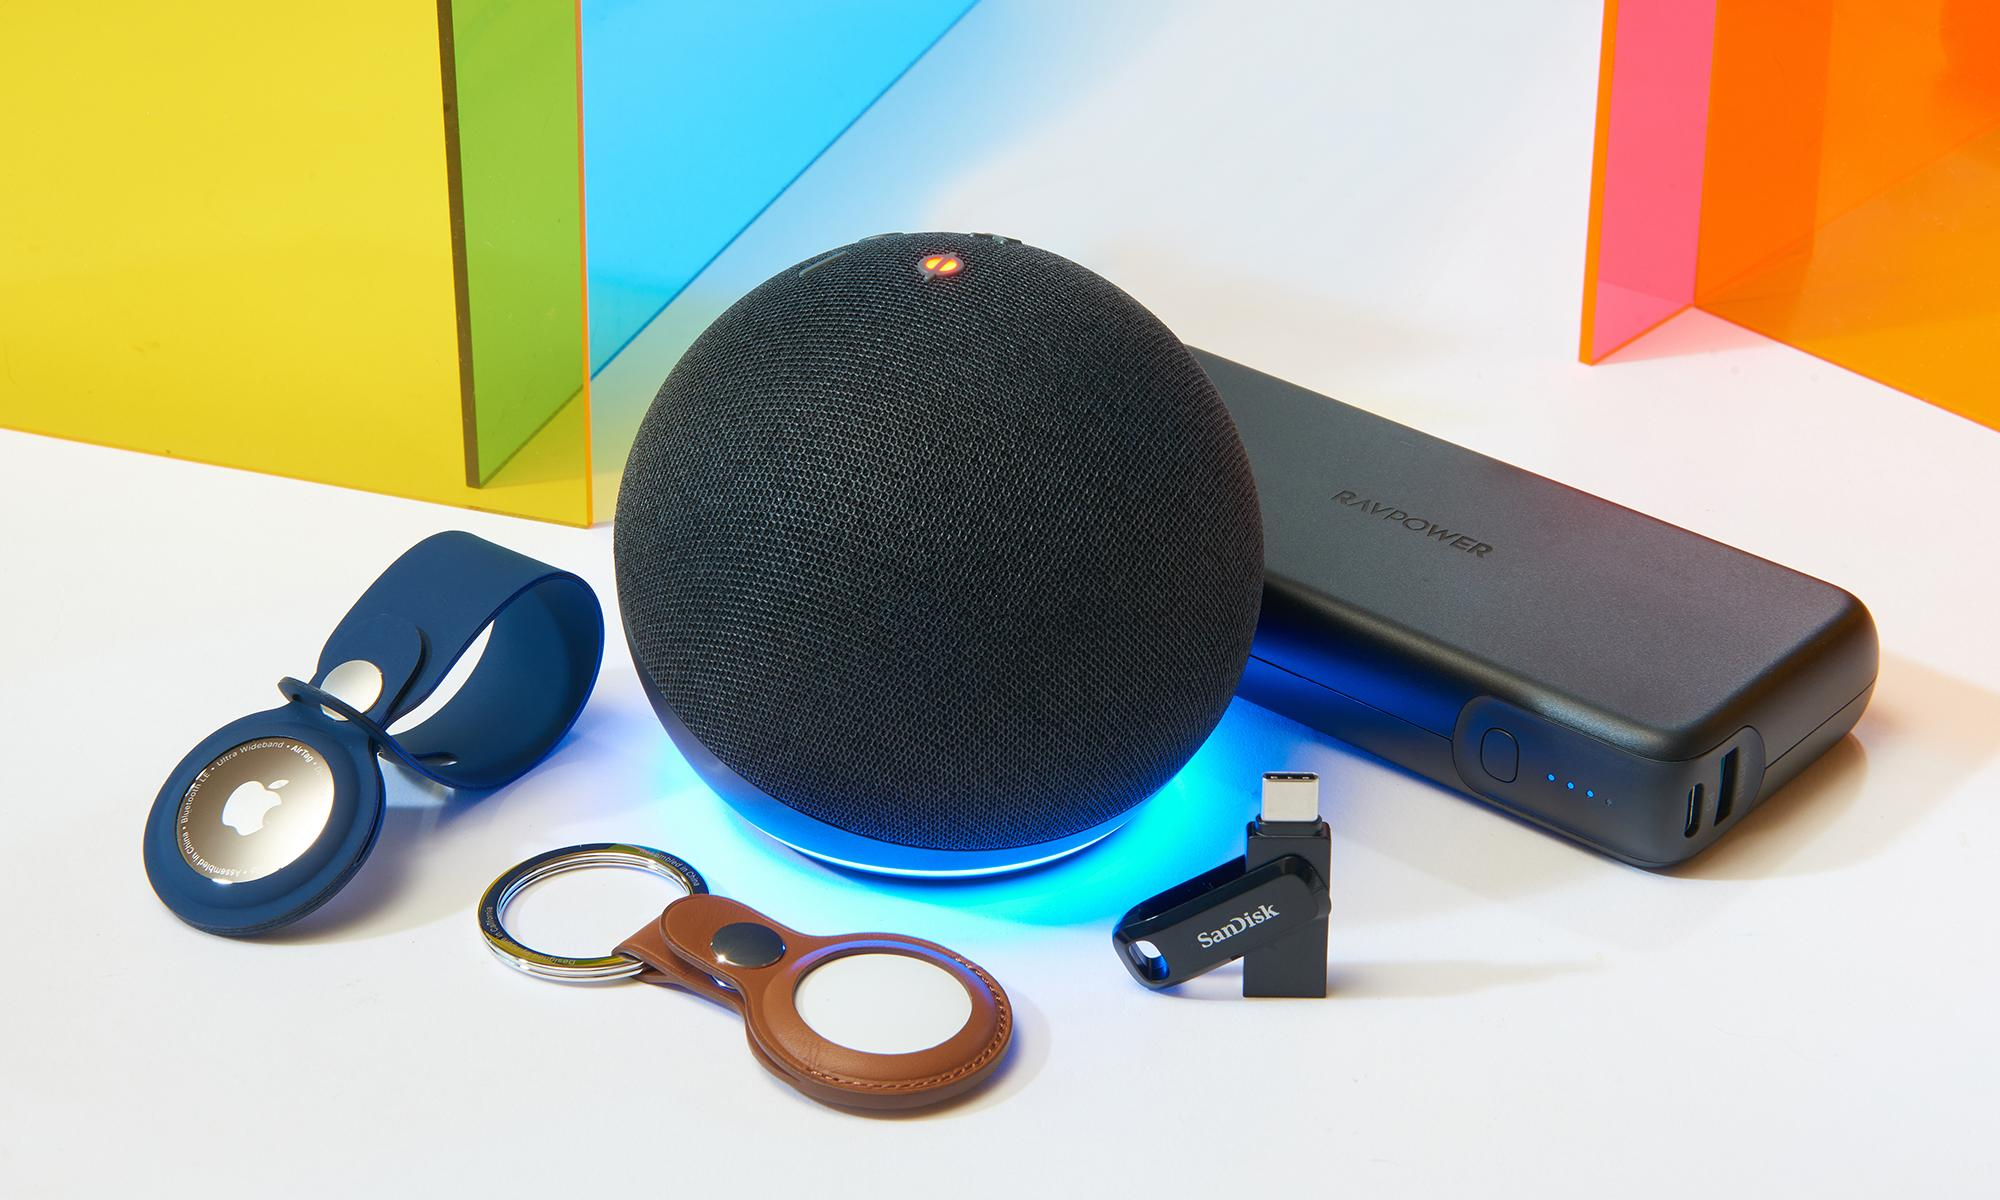 A selection of products for Engadget's 2021 Back to School guide.